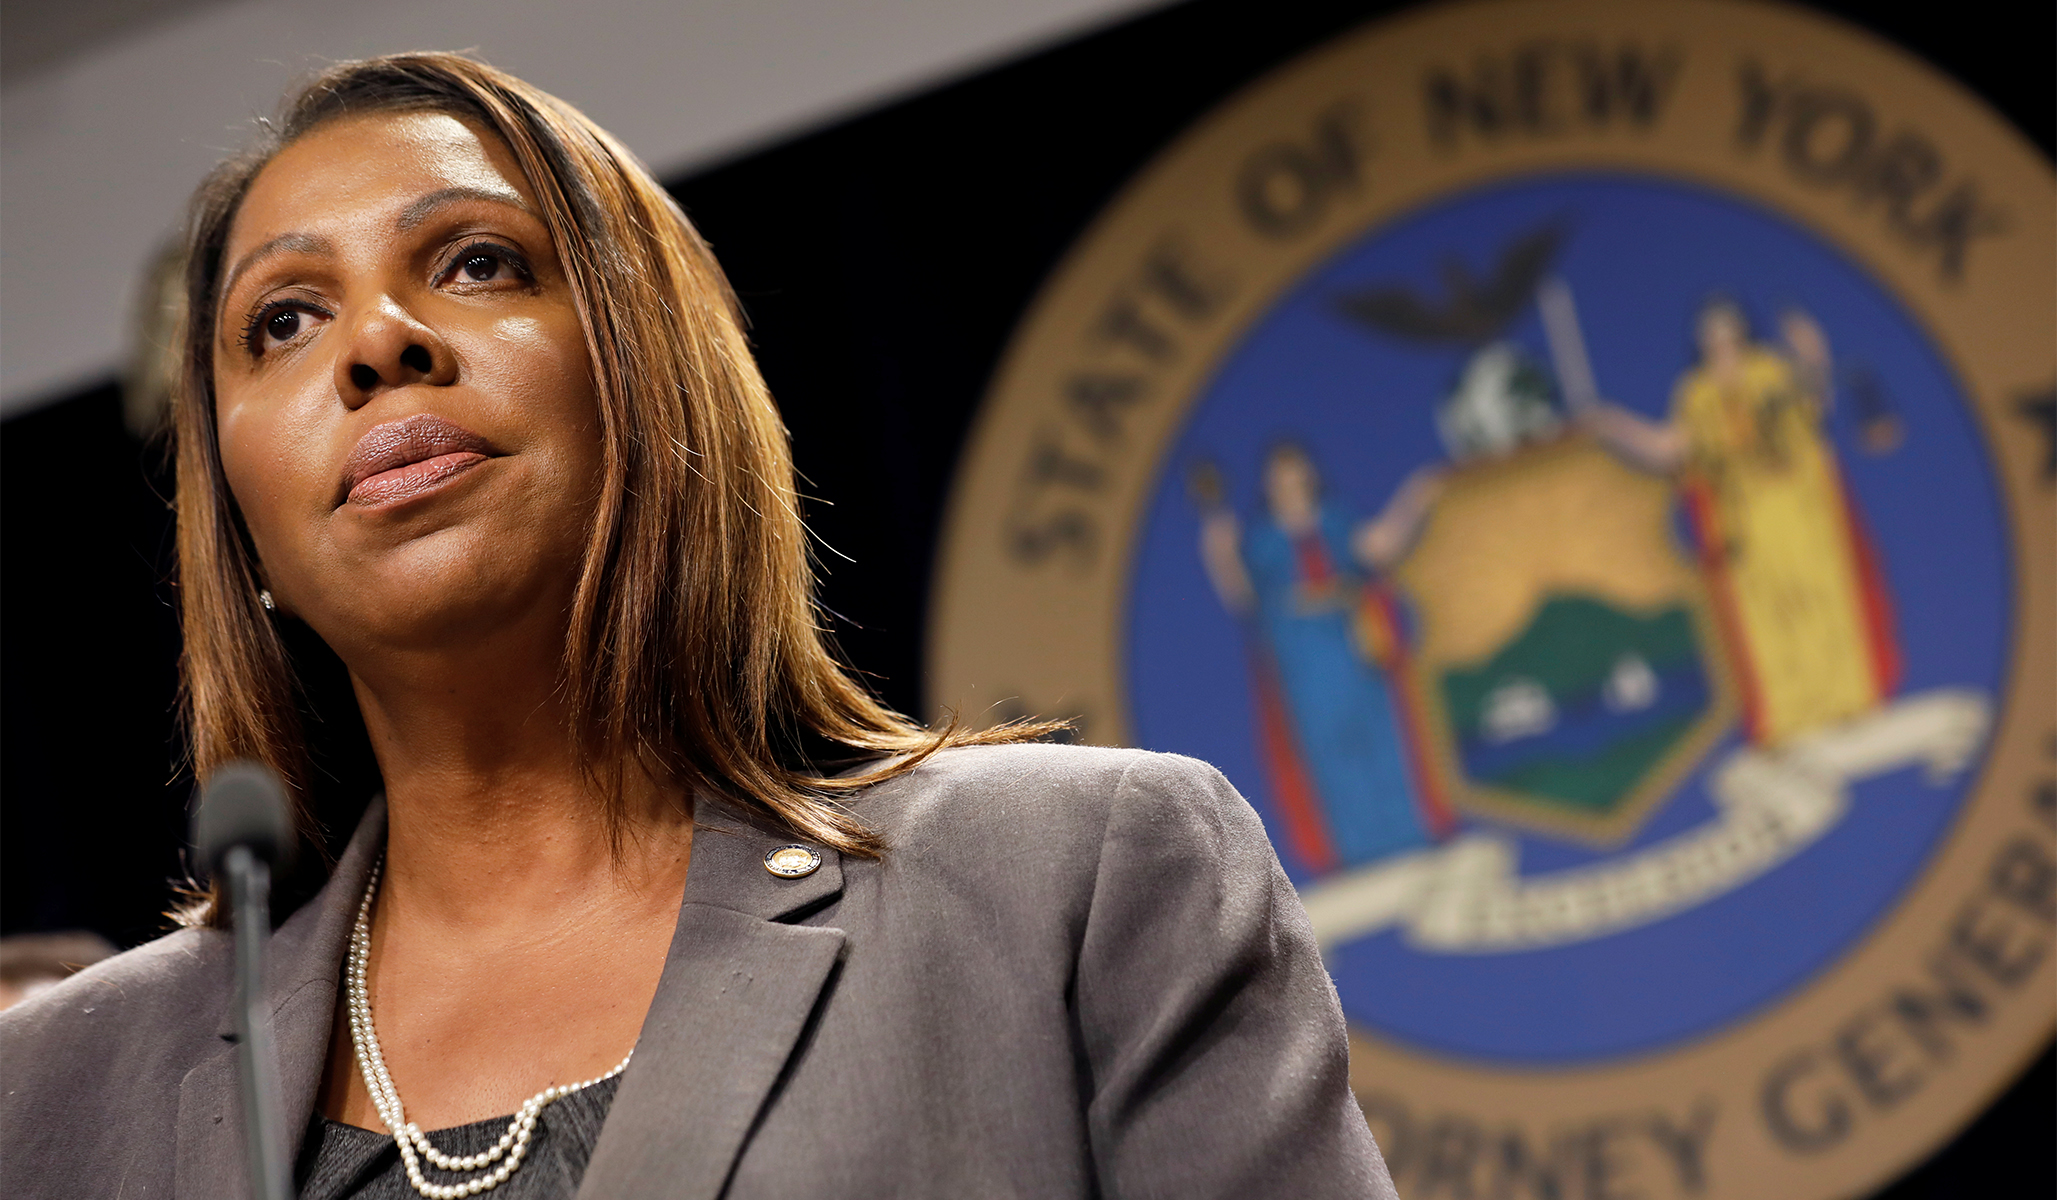 New York State AG's New Plan Would Strip NYPD Control from Mayor de Blasio: Report thumbnail